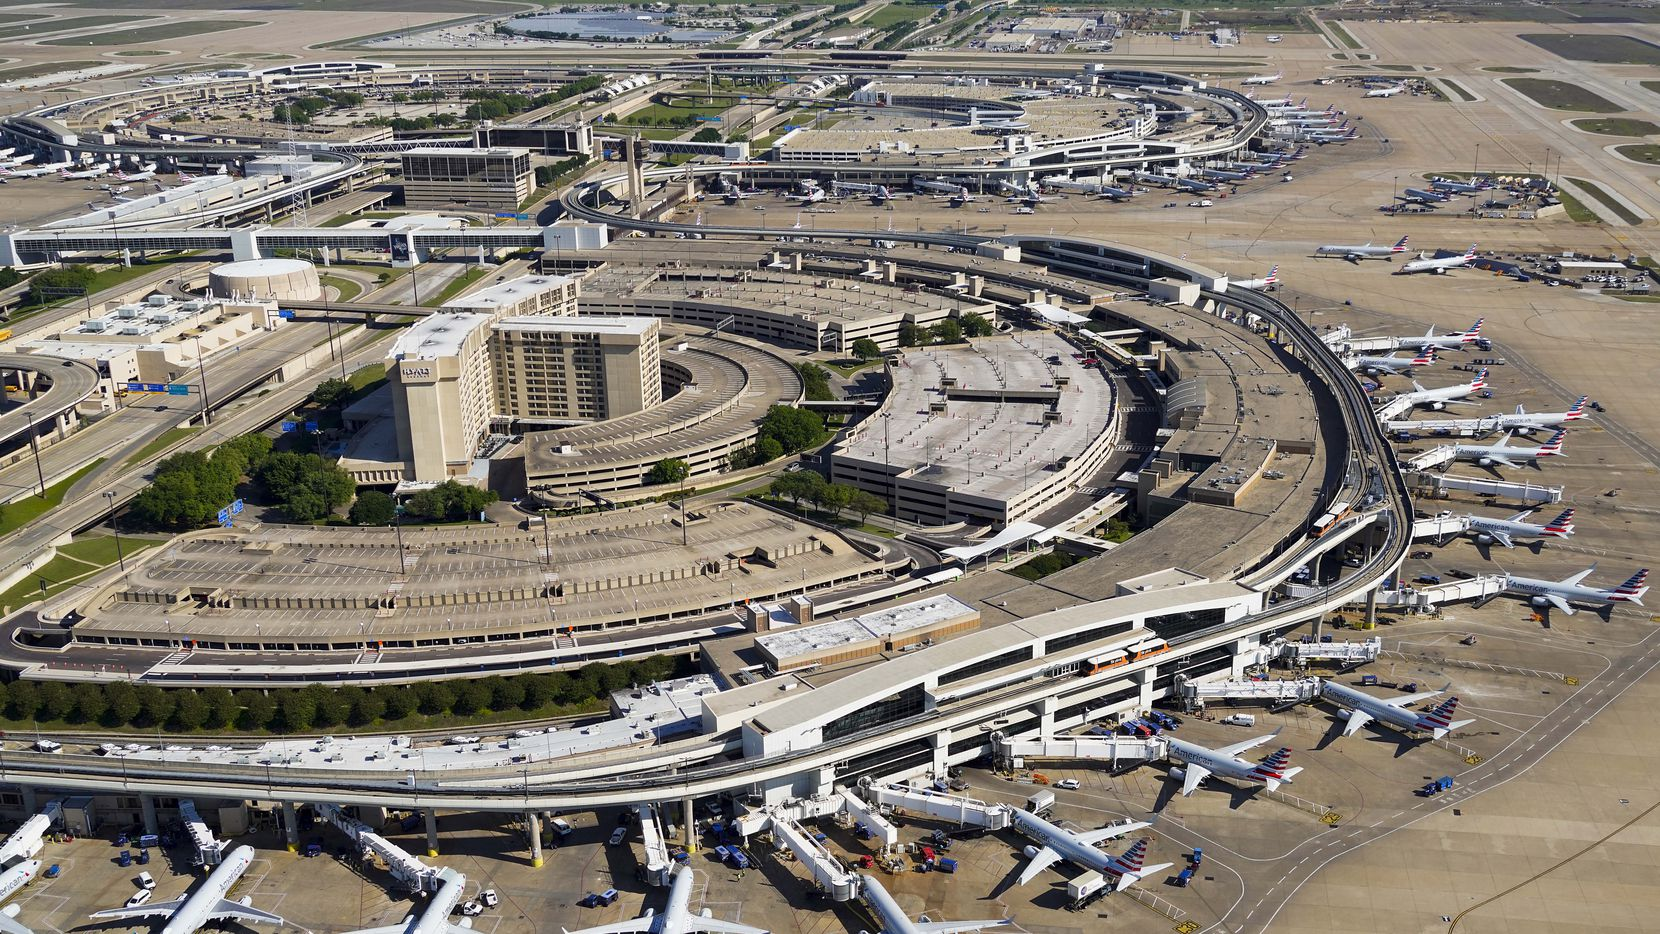 Aerial view of American Airlines aircraft at the gates of Terminal C (bottom) and Terminal A (top) at Dallas Fort Worth (DFW) International Airport on April 16, 2020.